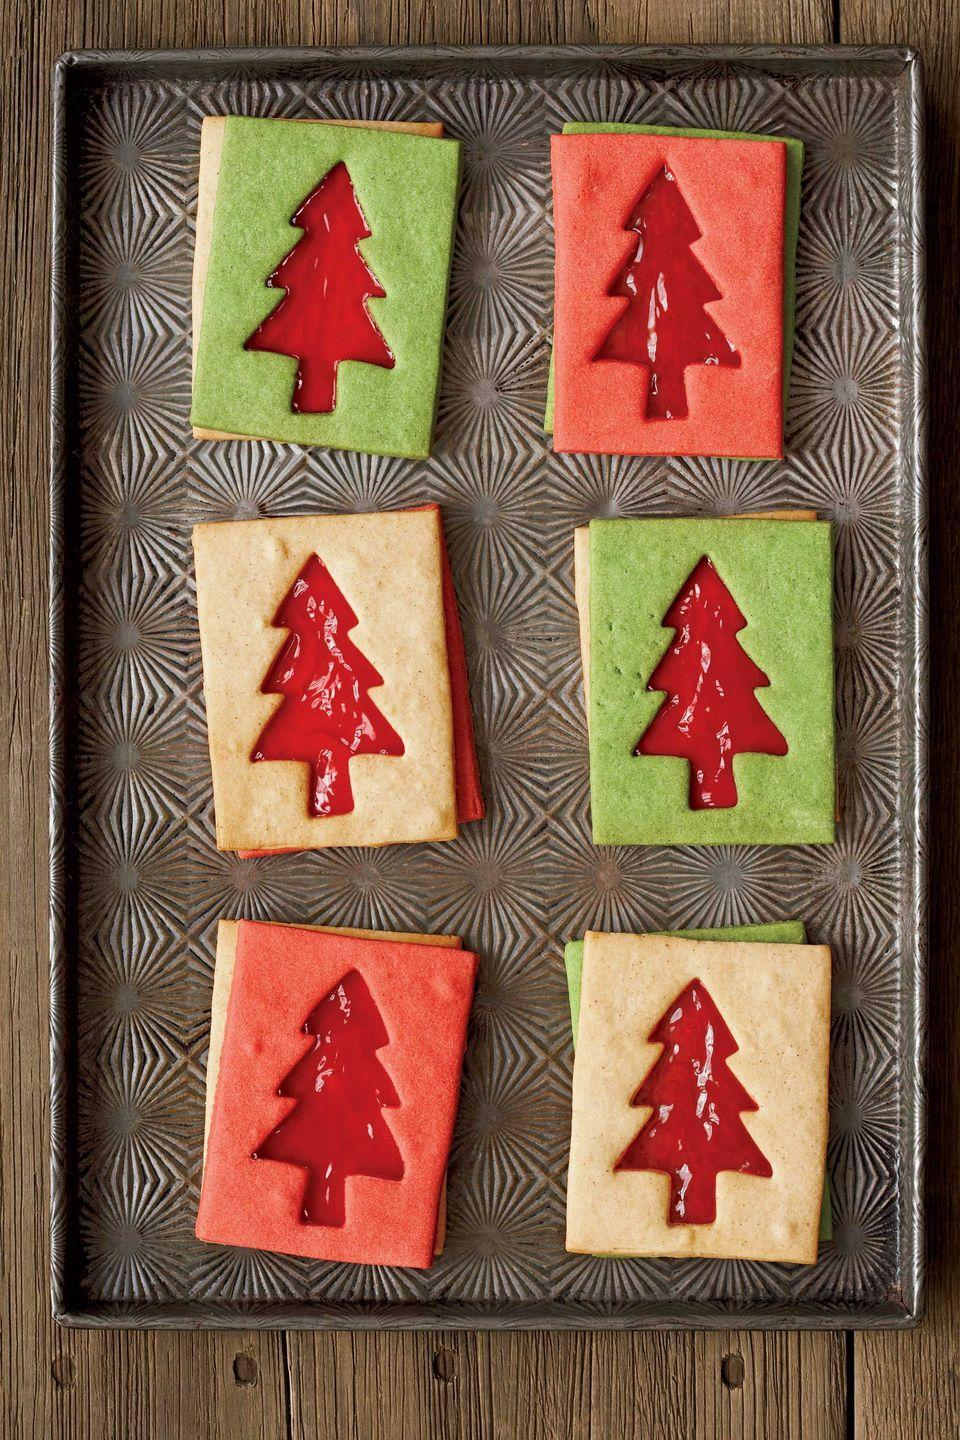 "<p>Christmas tree cookies are a traditional favorite. Prevent waste by using both the positive and negative shapes. For Linzer-Style Tree cookies, spread red currant, strawberry, or raspberry jelly or preserves on the bottom cookie so the color peeks through the top cookie's tree-shaped opening (Smucker's jelly or preserves are a good choice).</p><p><a href=""https://www.countryliving.com/food-drinks/recipes/a2022/sugar-cookie-dough-clv1207/"" rel=""nofollow noopener"" target=""_blank"" data-ylk=""slk:Get the recipe."" class=""link rapid-noclick-resp""><strong>Get the recipe.</strong></a></p>"